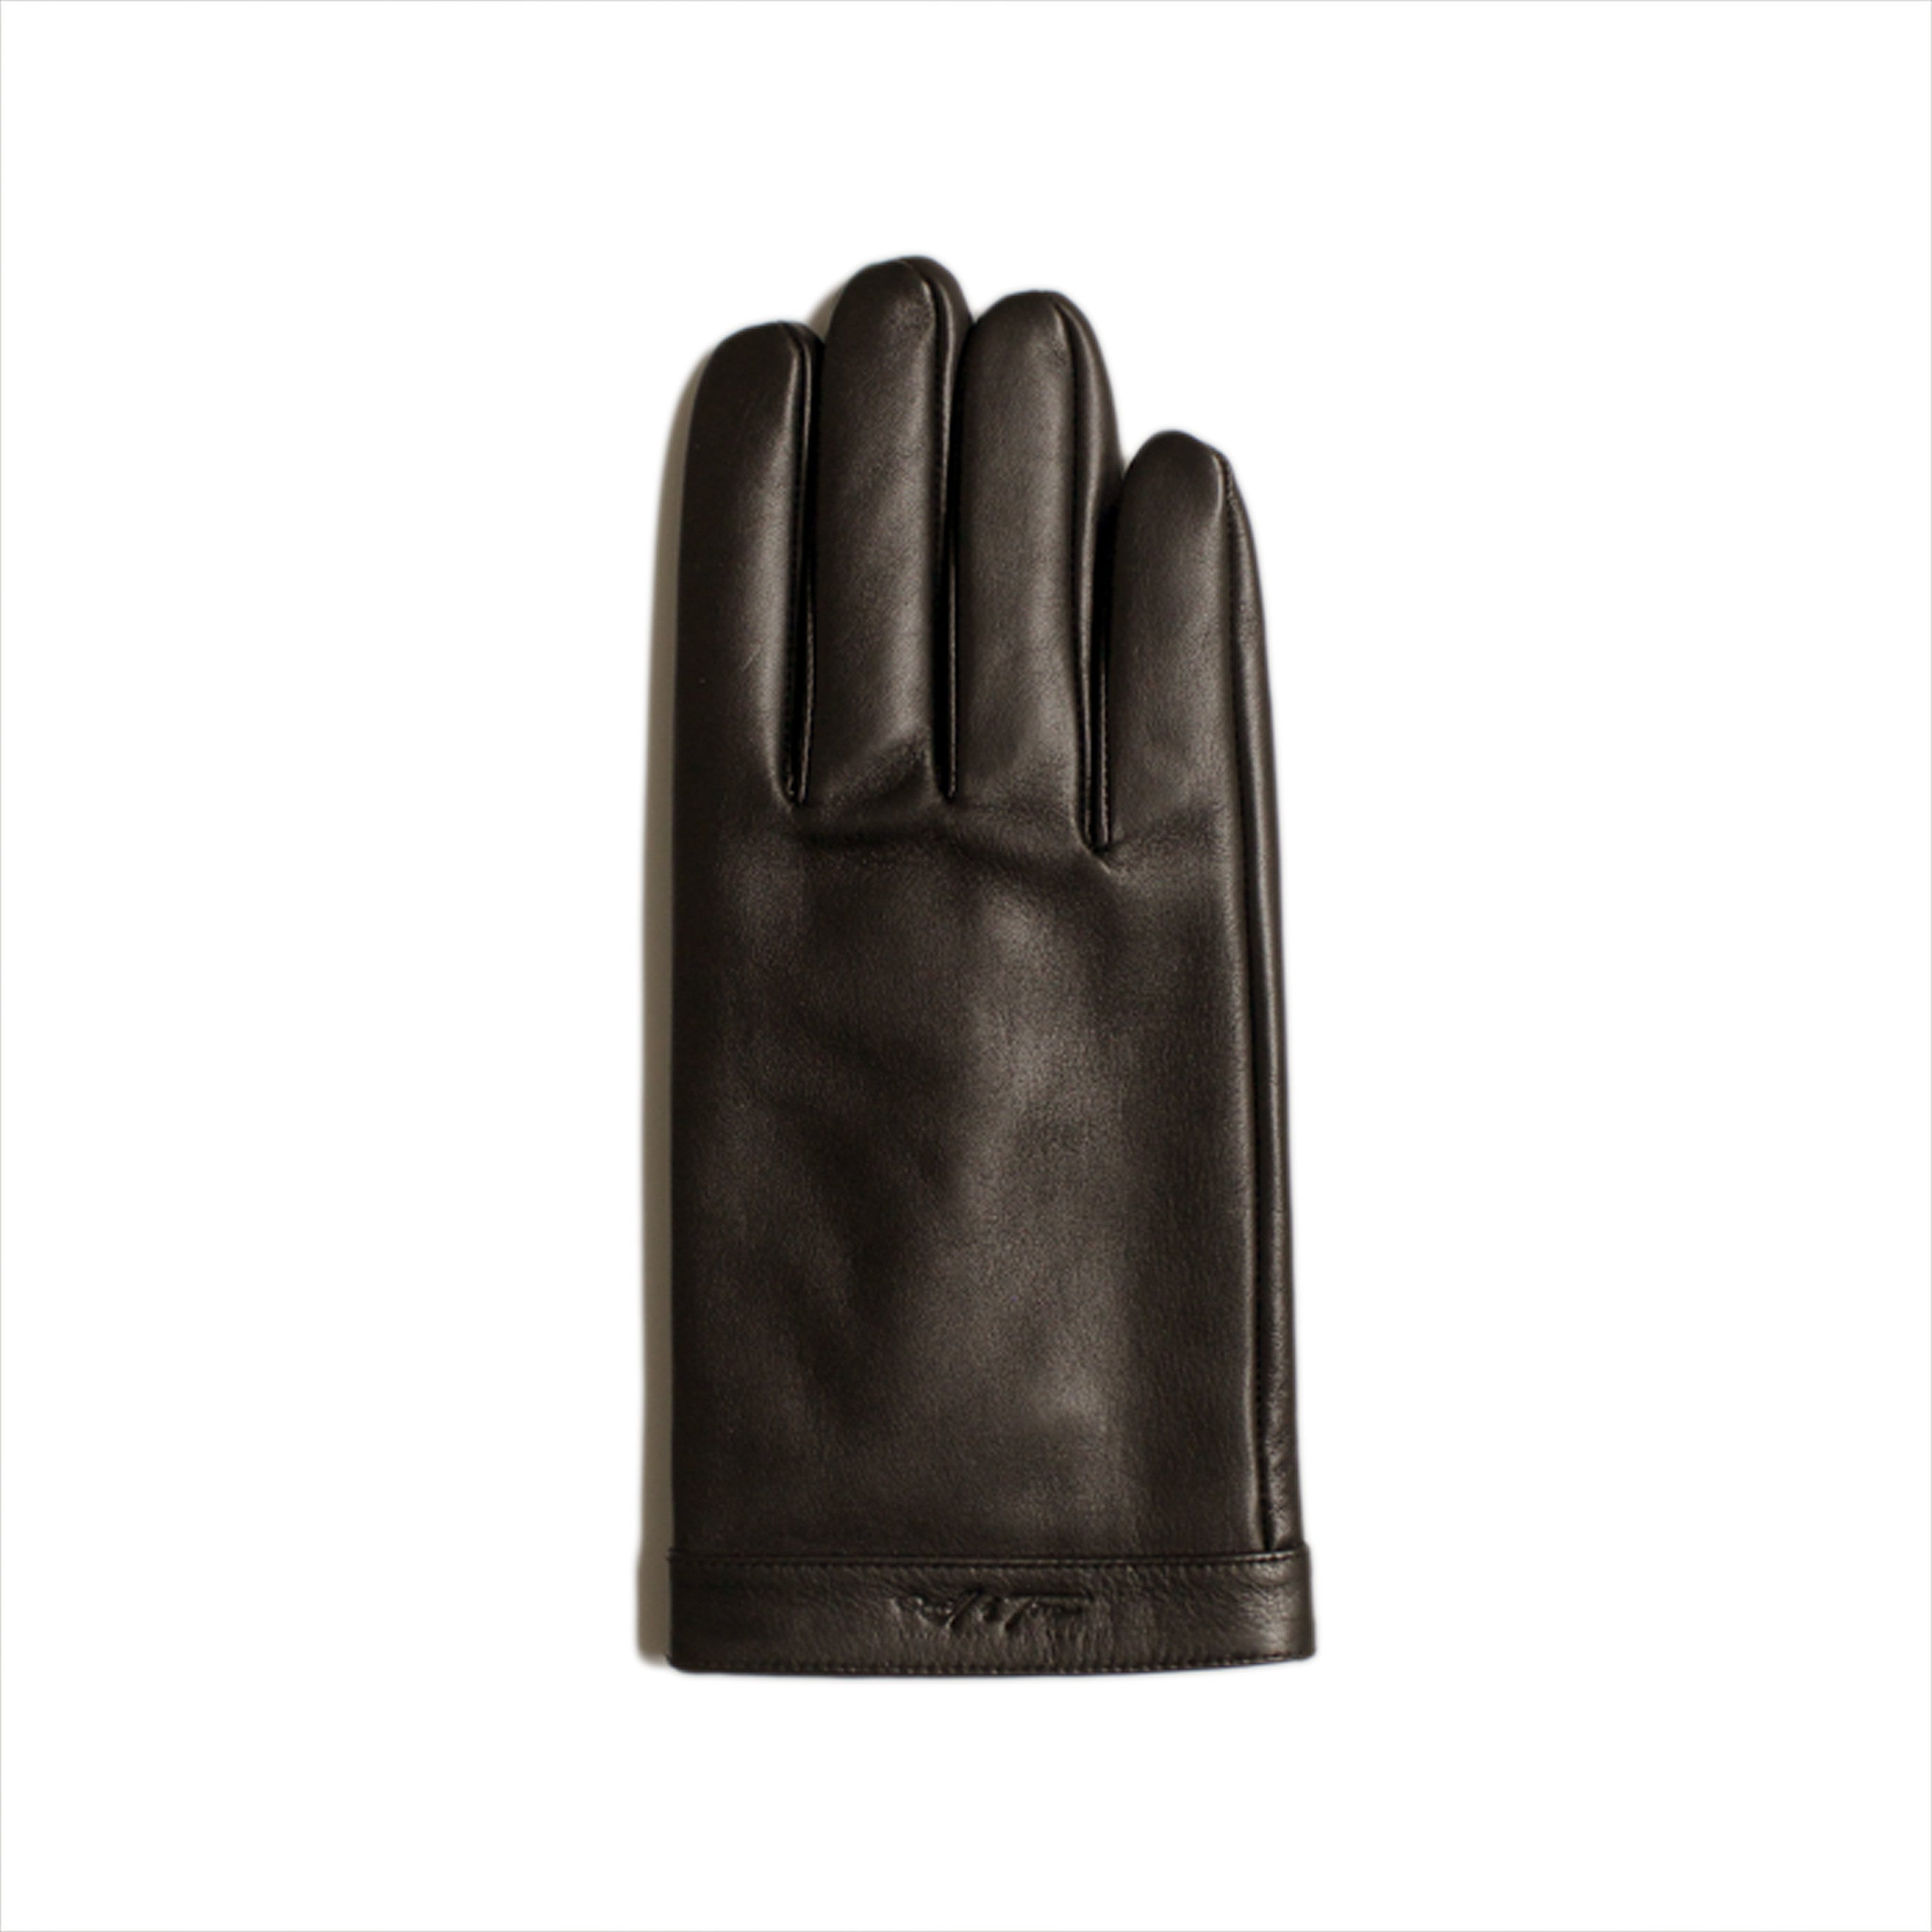 The Mercer Touchscreen Glove for Him